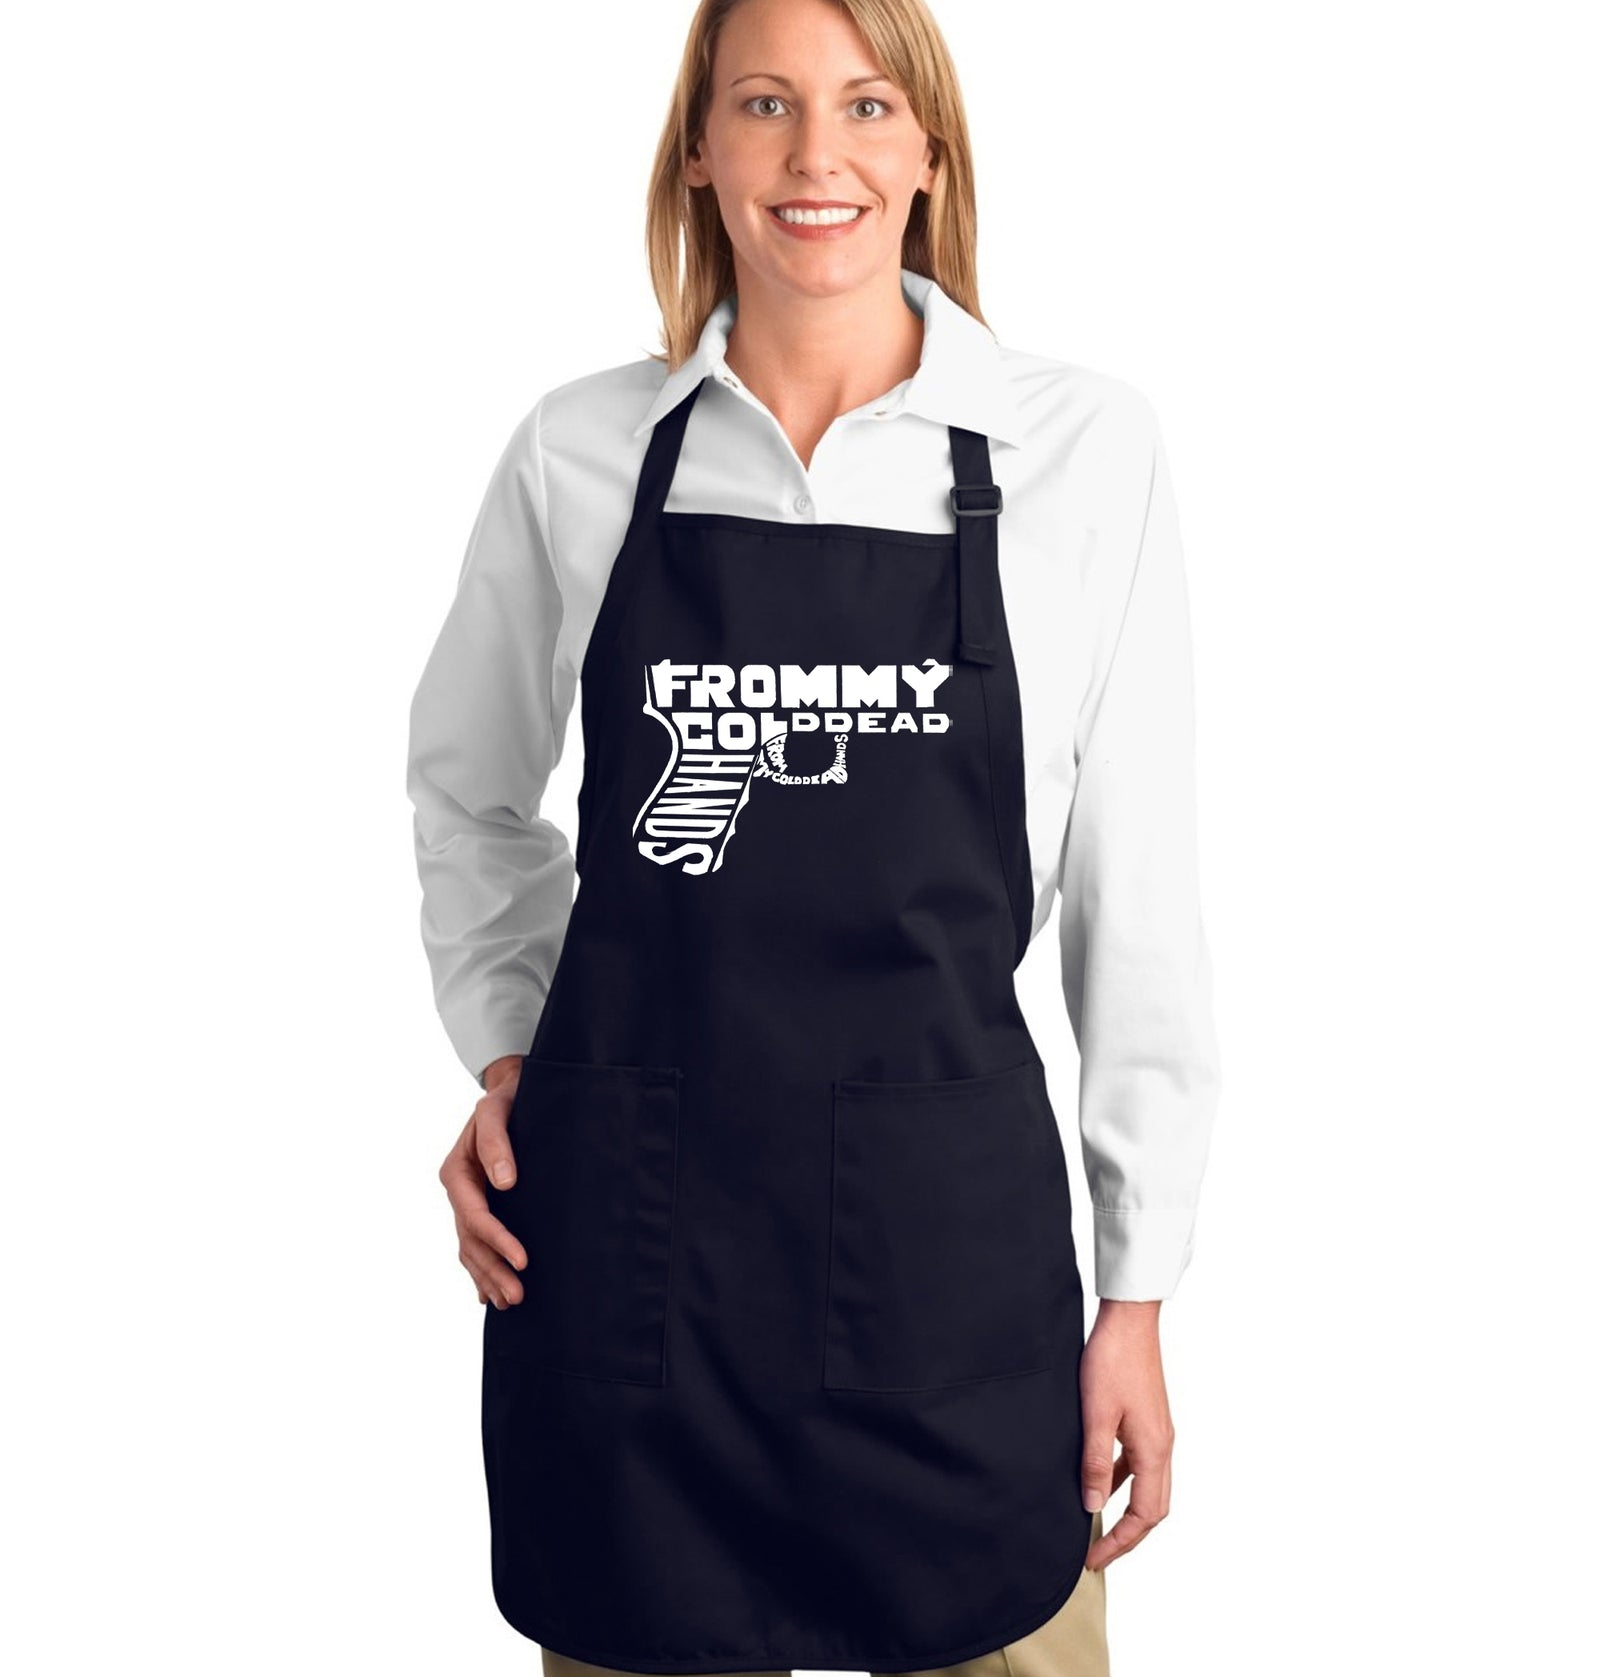 Los Angeles Pop Art Full Length Apron - Out of My cold Dead Hands Gun